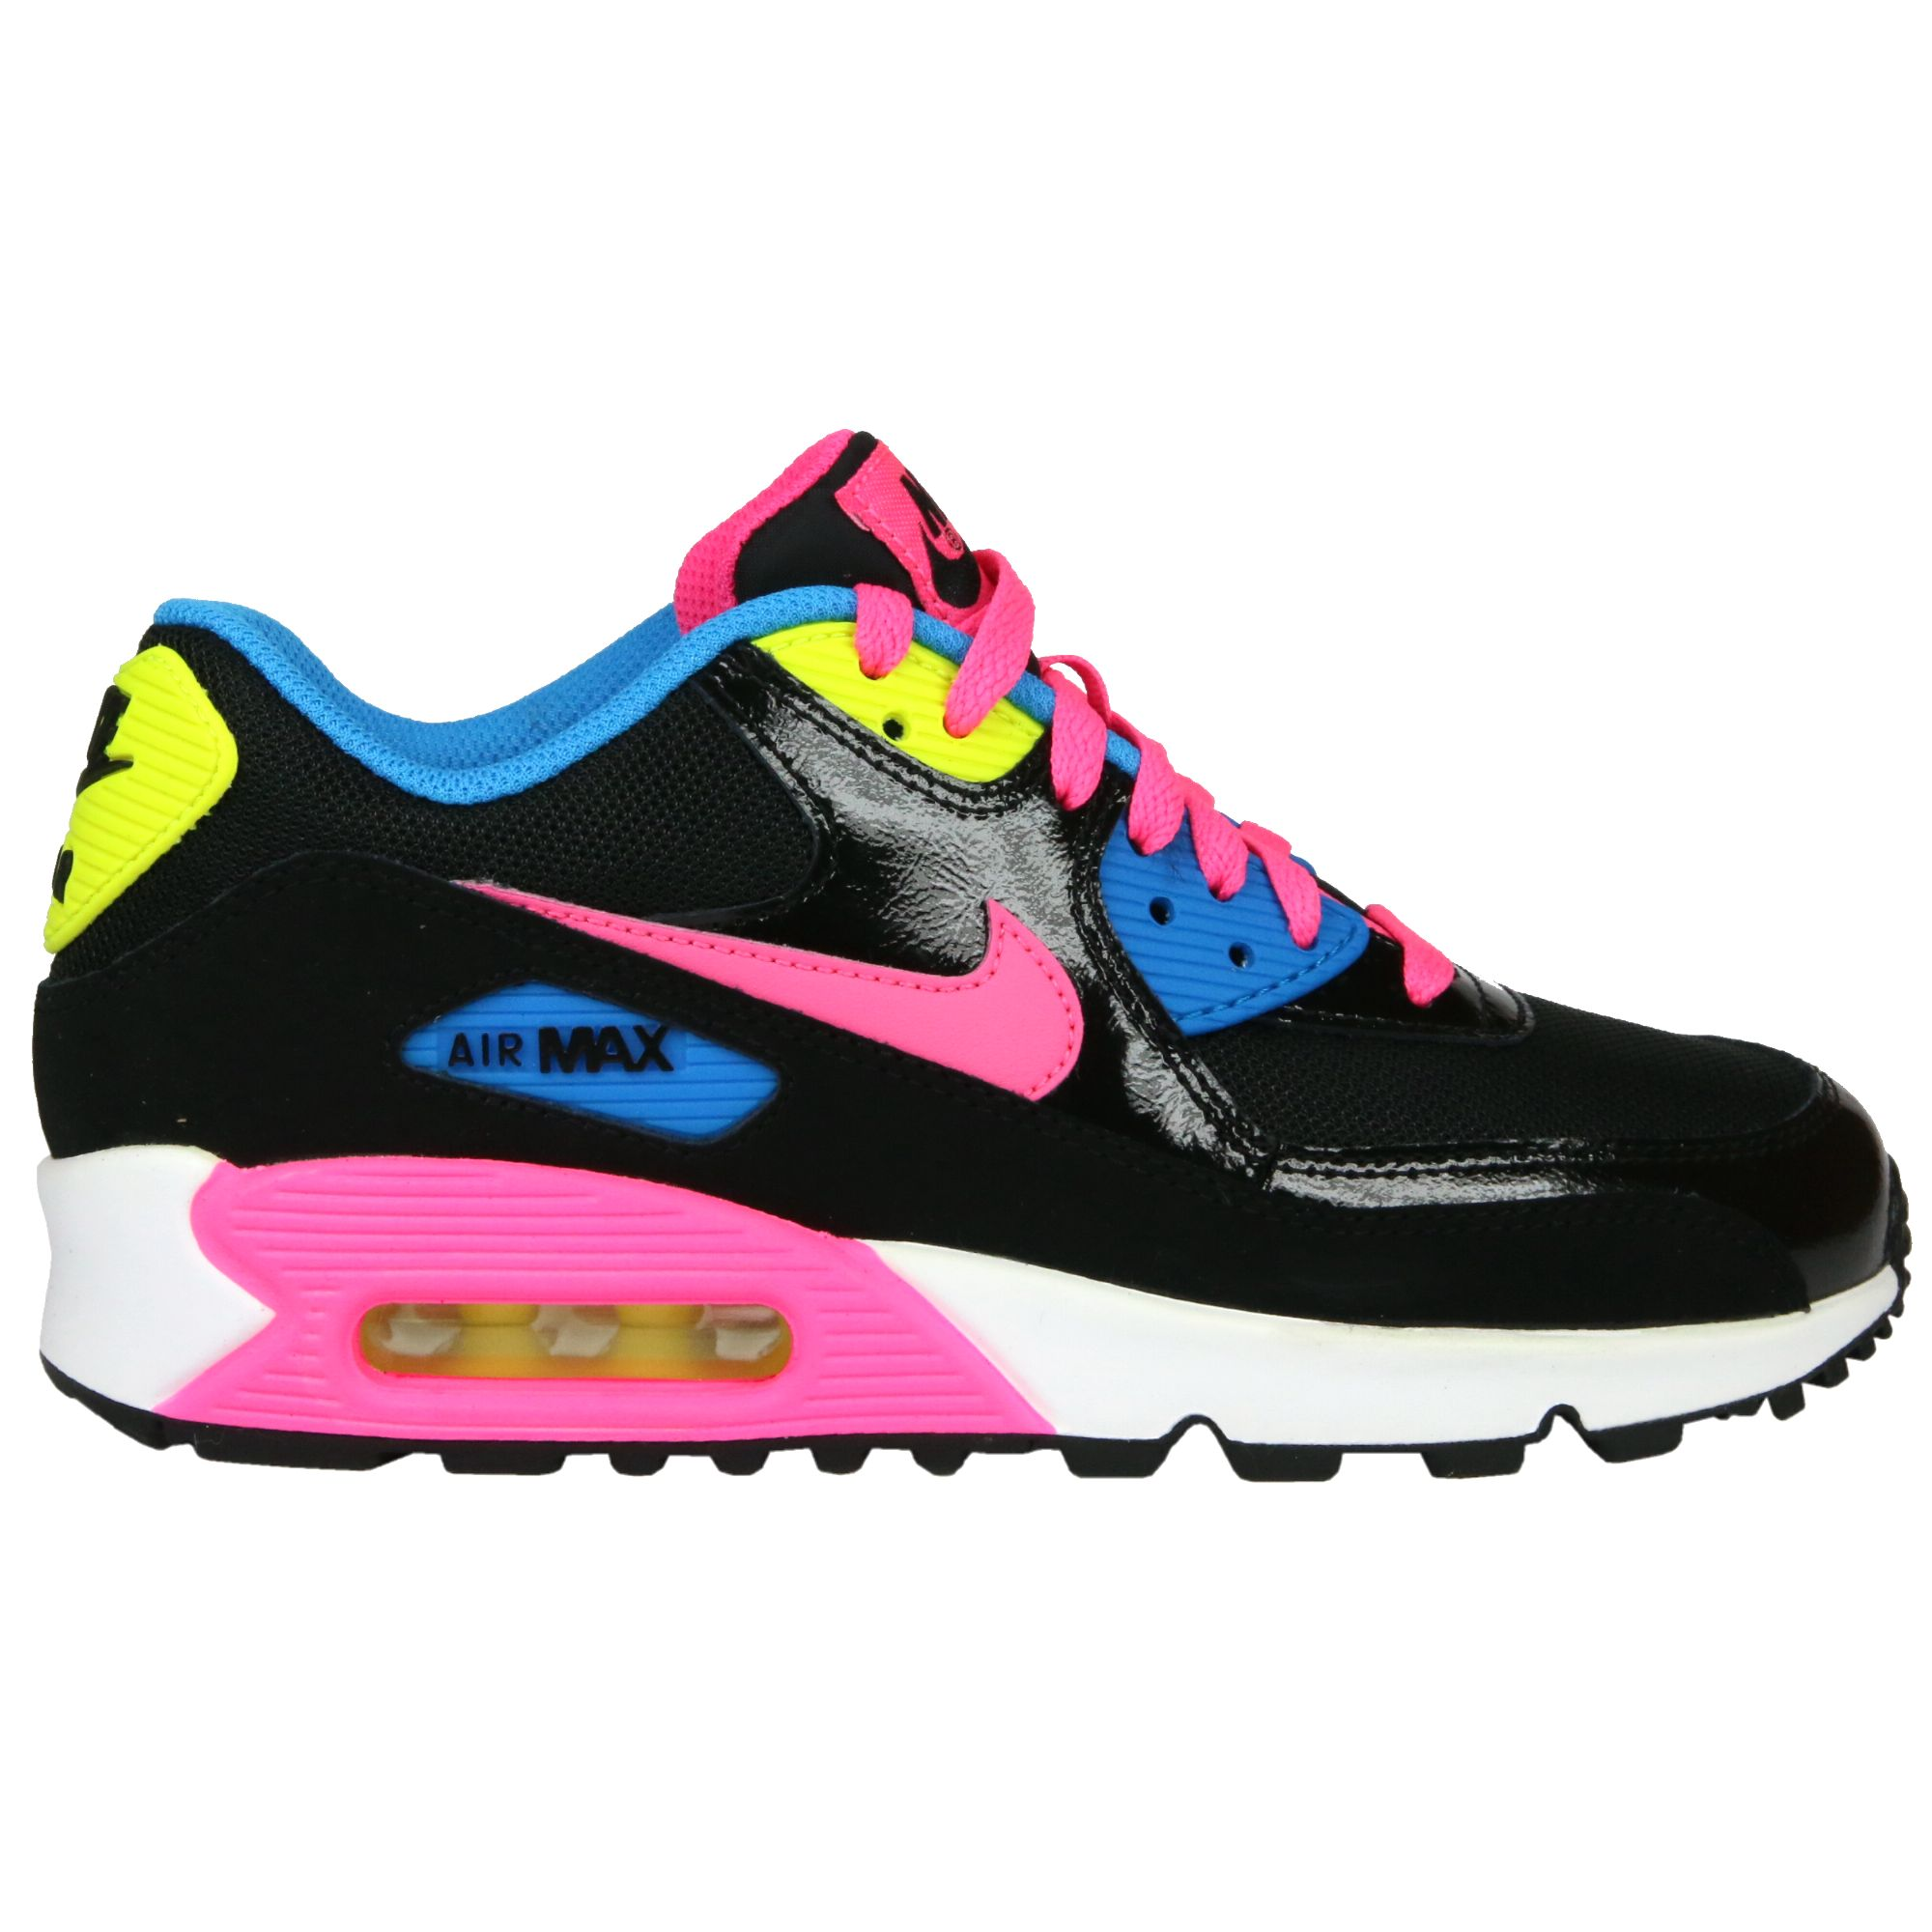 nike air max 90 gs schuhe turnschuhe sneaker damen kinder ebay. Black Bedroom Furniture Sets. Home Design Ideas